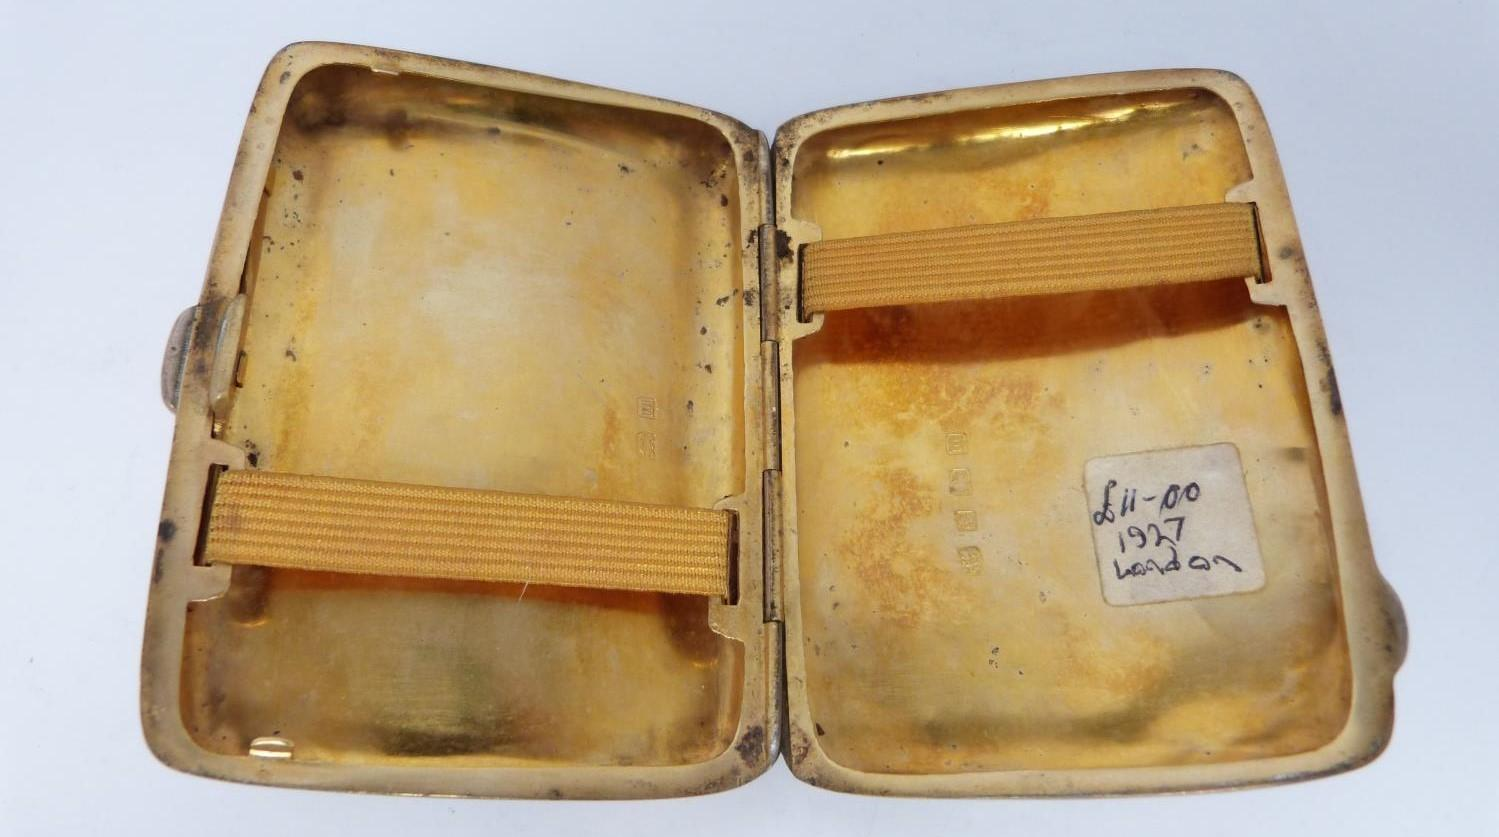 Three monogrammed silver cigarette cases, large case, birmingham 1920, Charles S Green & Co Ltd. - Image 10 of 10